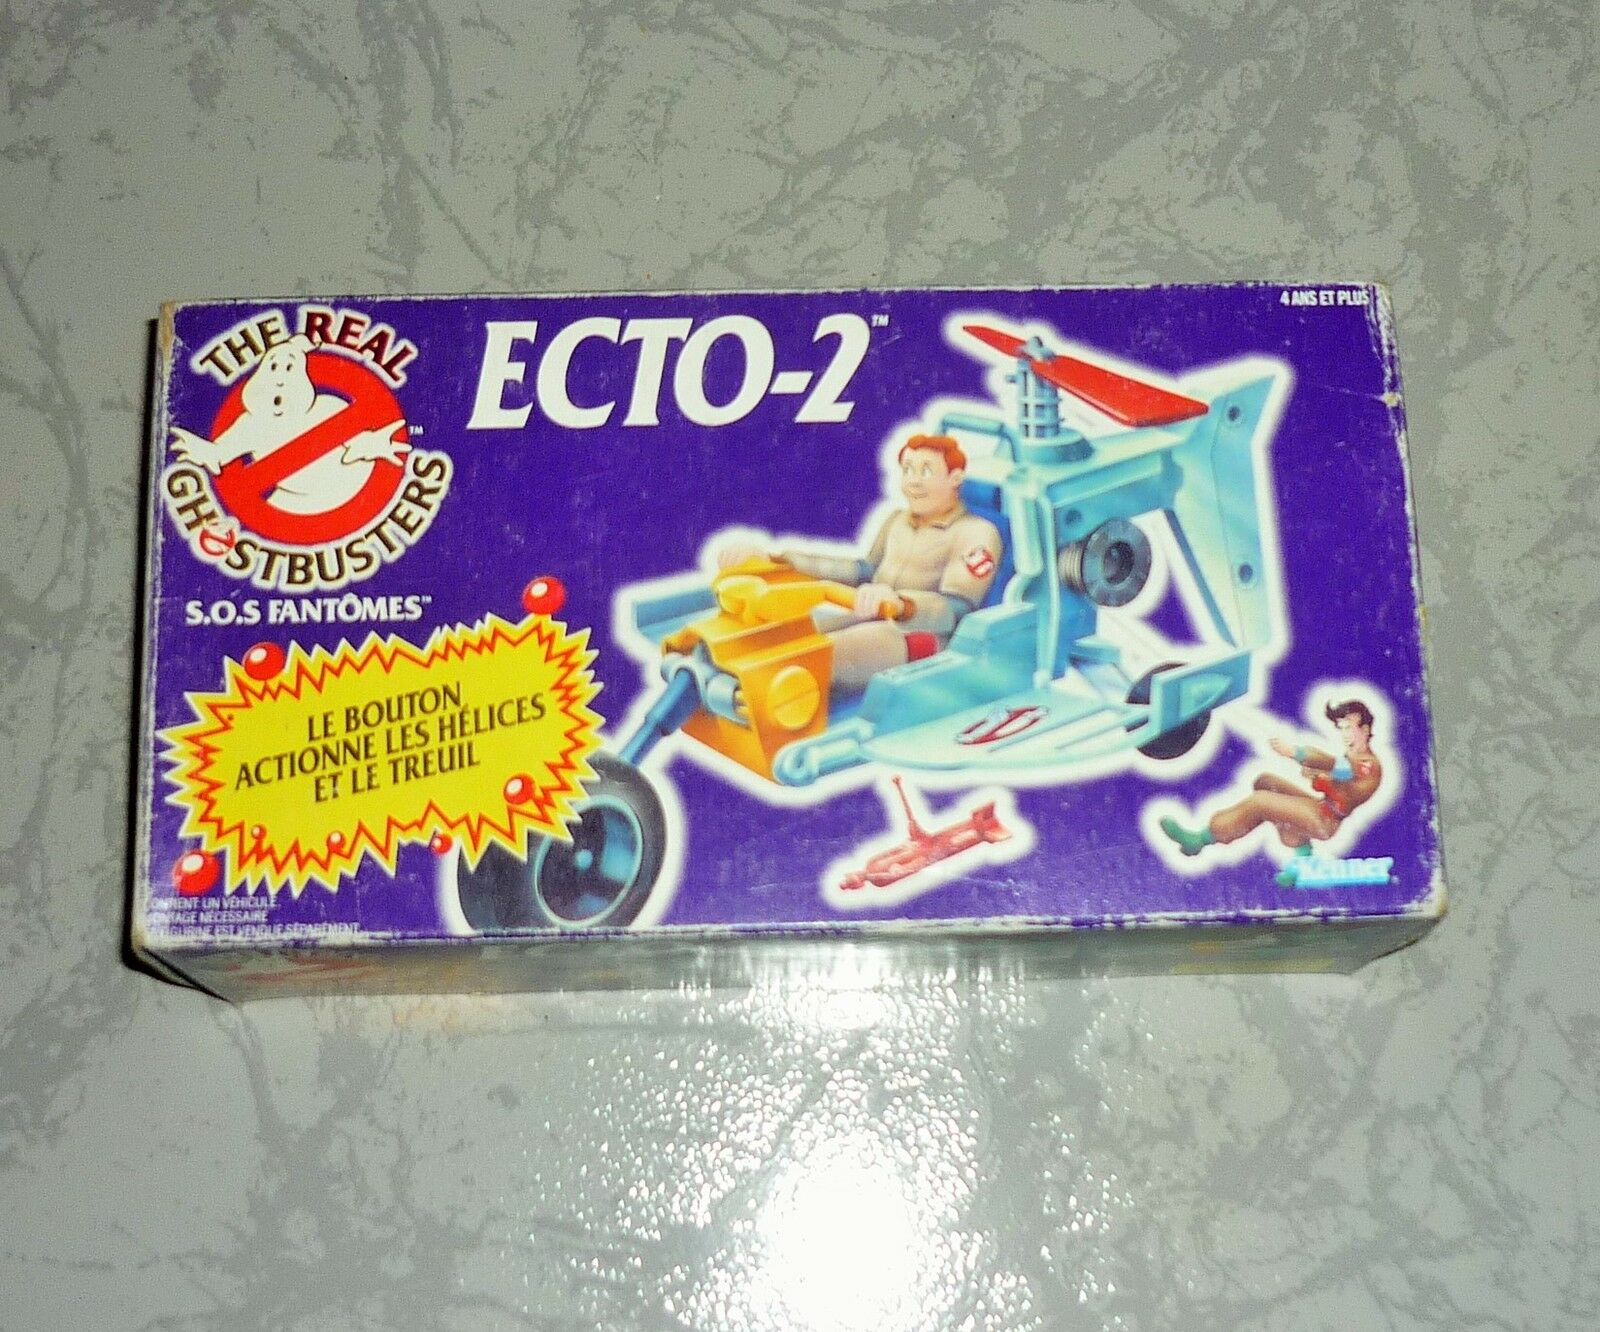 FIGURINE VOITURE THE REAL GHOSTBUSTERS ECTO-2 BOXED SANS PERSONNAGE